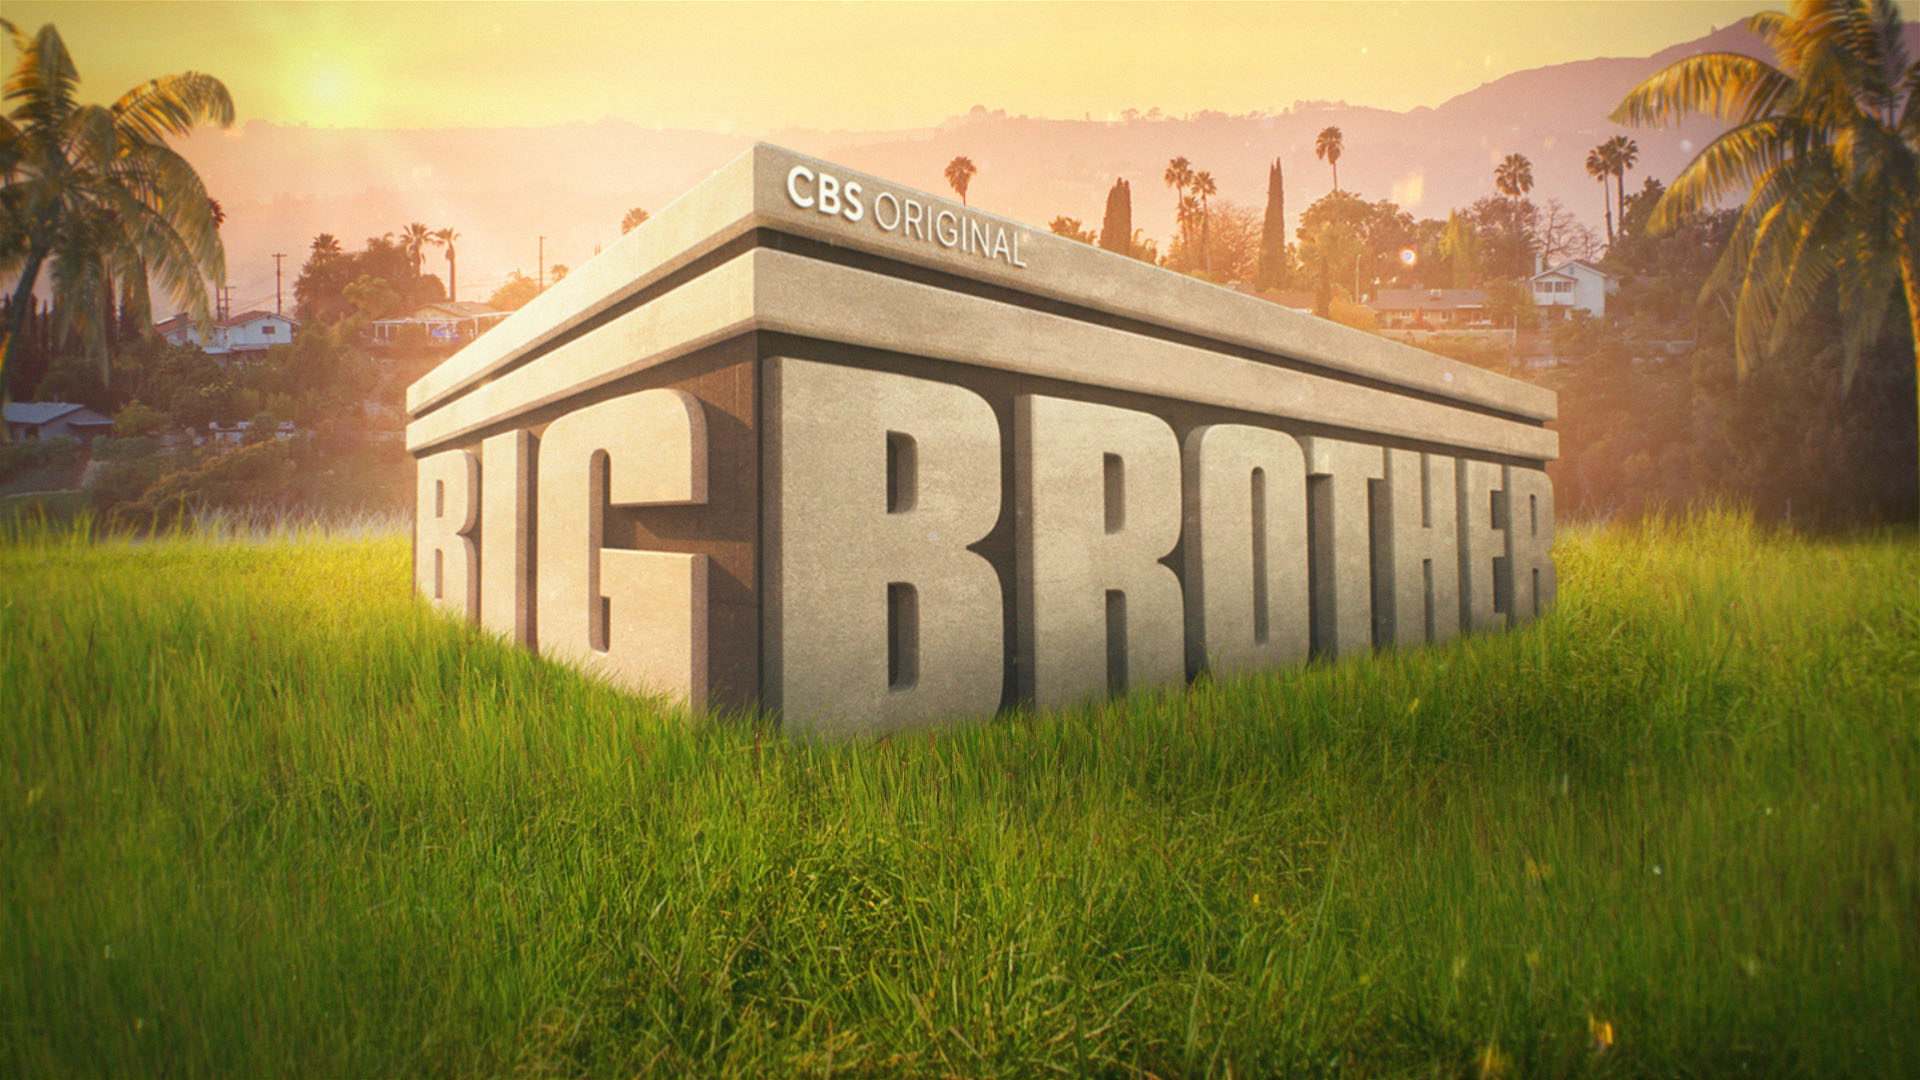 Don't miss all new episodes of Big Brother Season 23 on Sundays,Wednesdays, and Thursdays at 8/7con CBS and Paramount+.